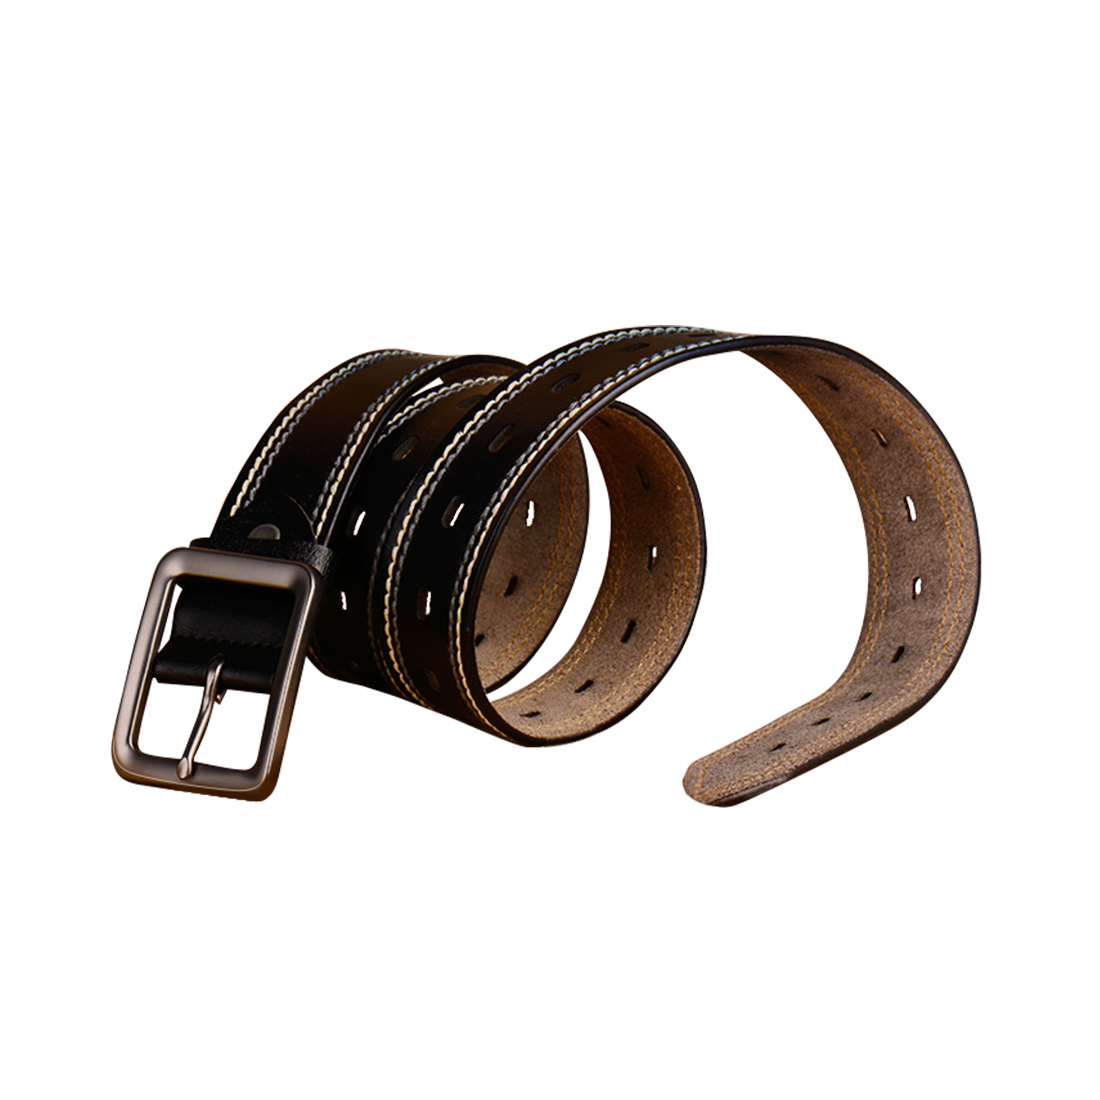 Mens Fancy Stitching Single Pin Buckle Leather Belt 39mm Width 1 1/2 Black 125cm